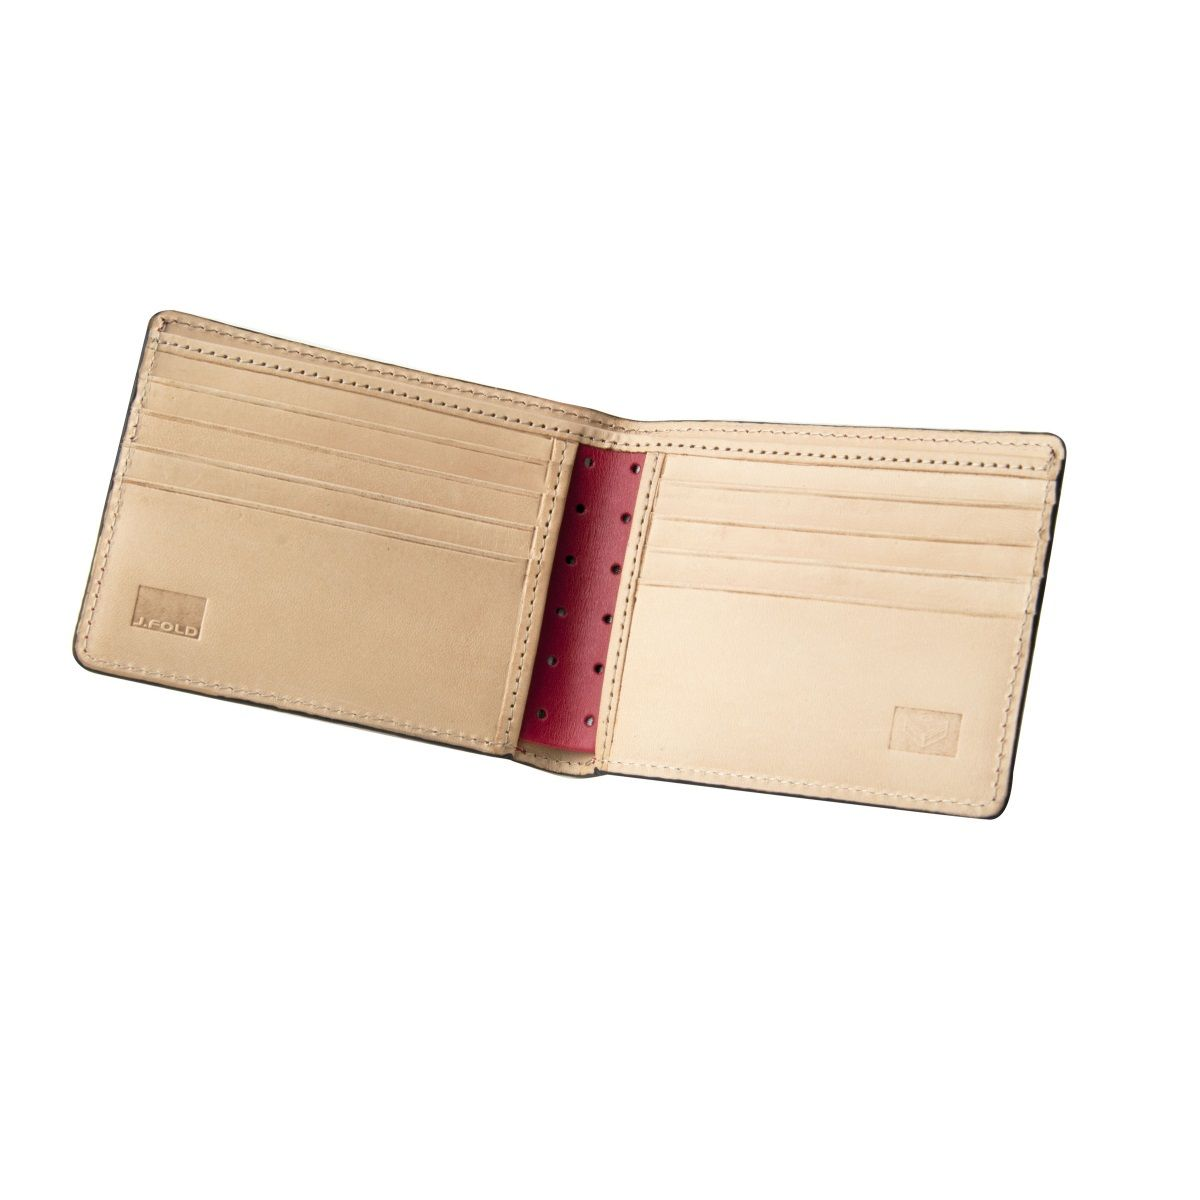 J.FOLD Thunderbird Leather Wallet - Red